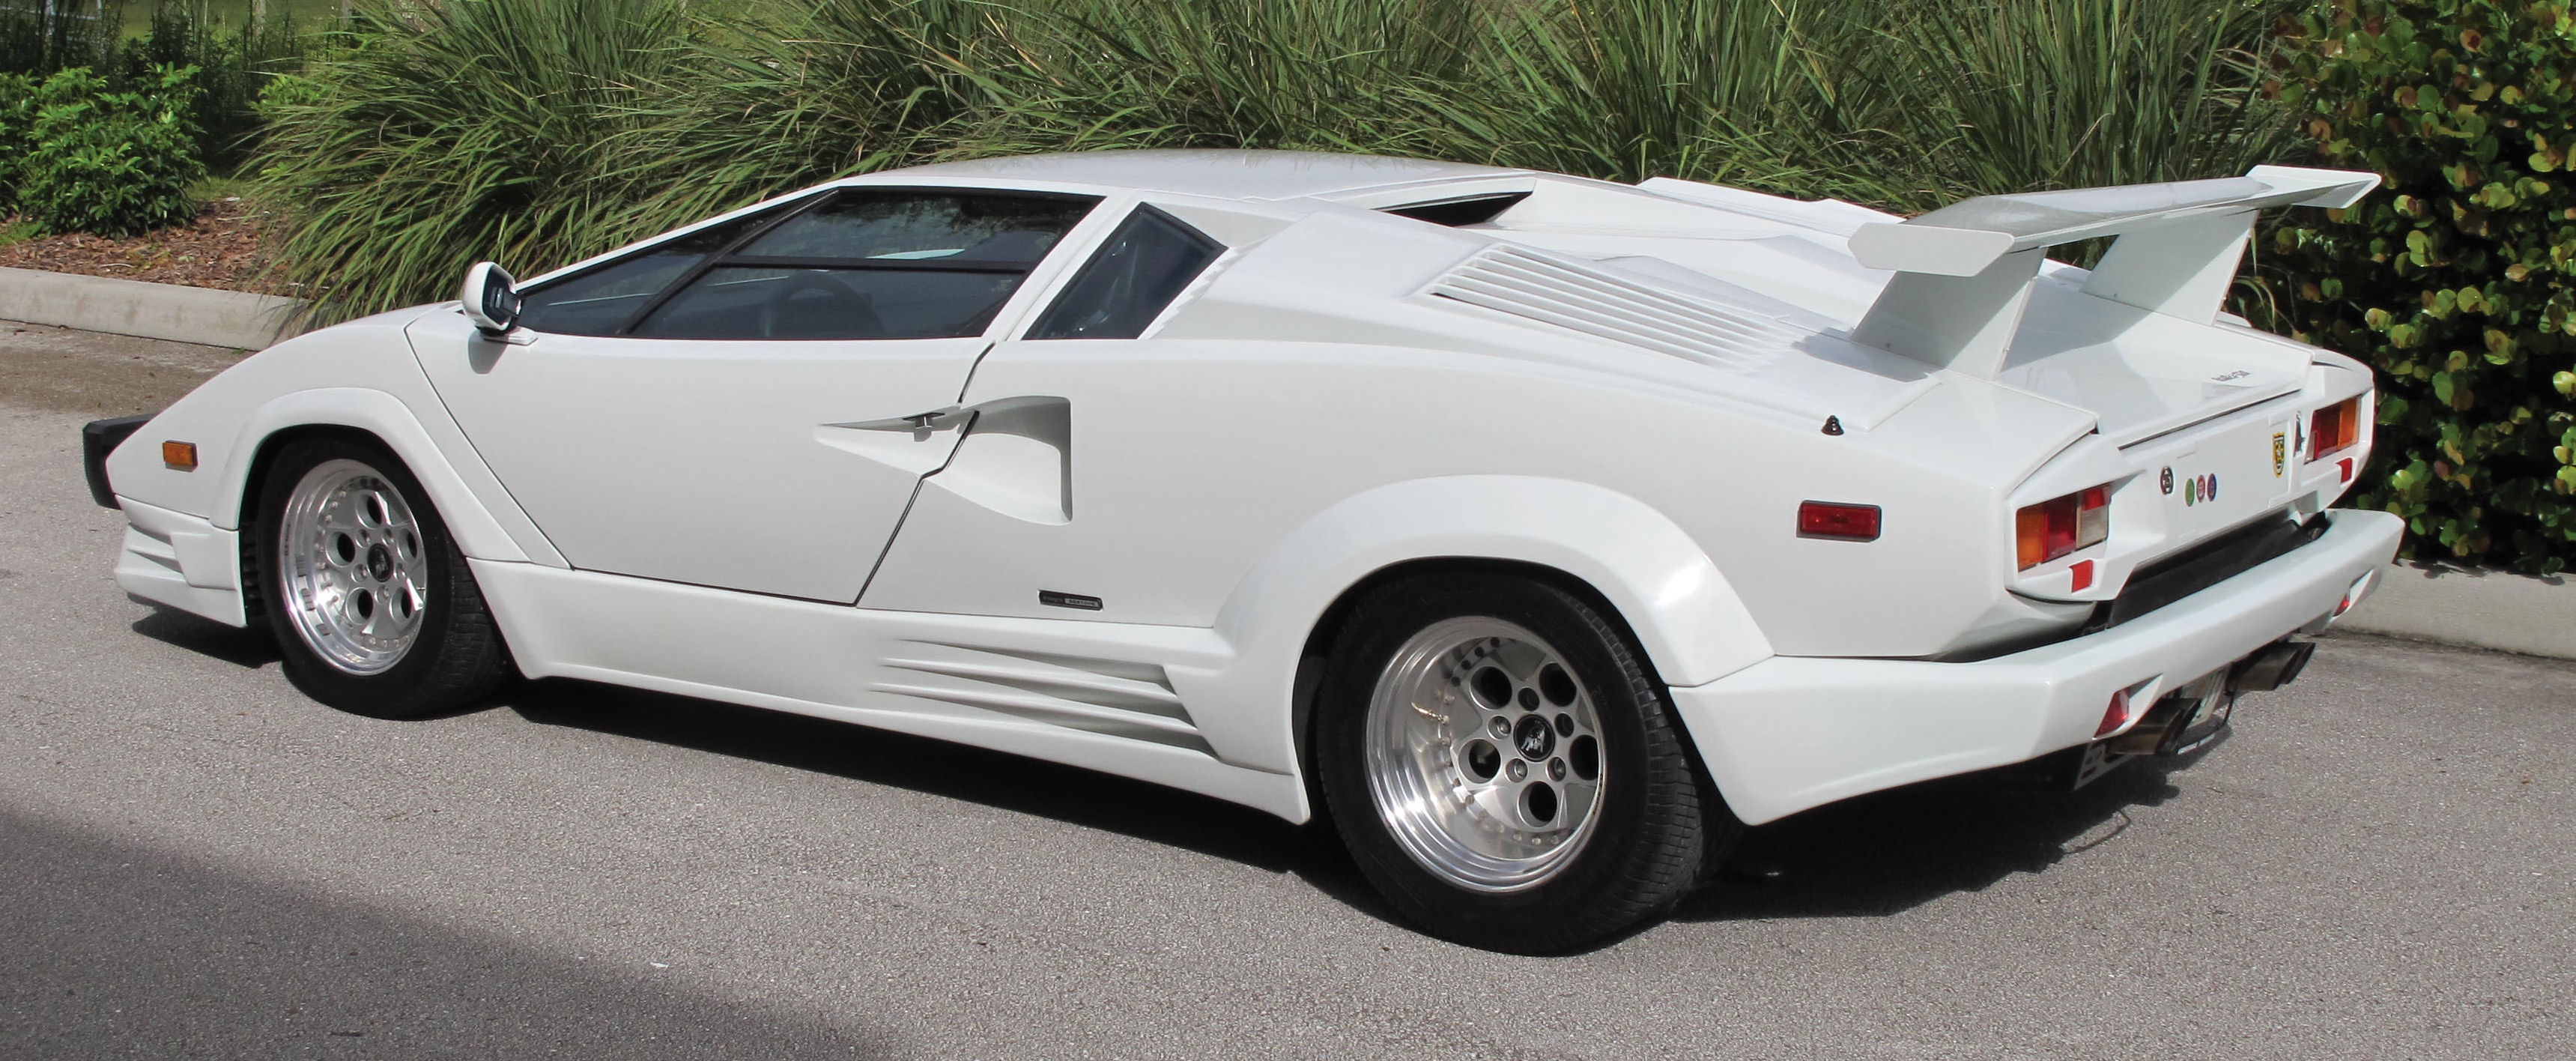 Anniversary edition Countach among star cars for sale at Hilton Head Island | Auctions America photos